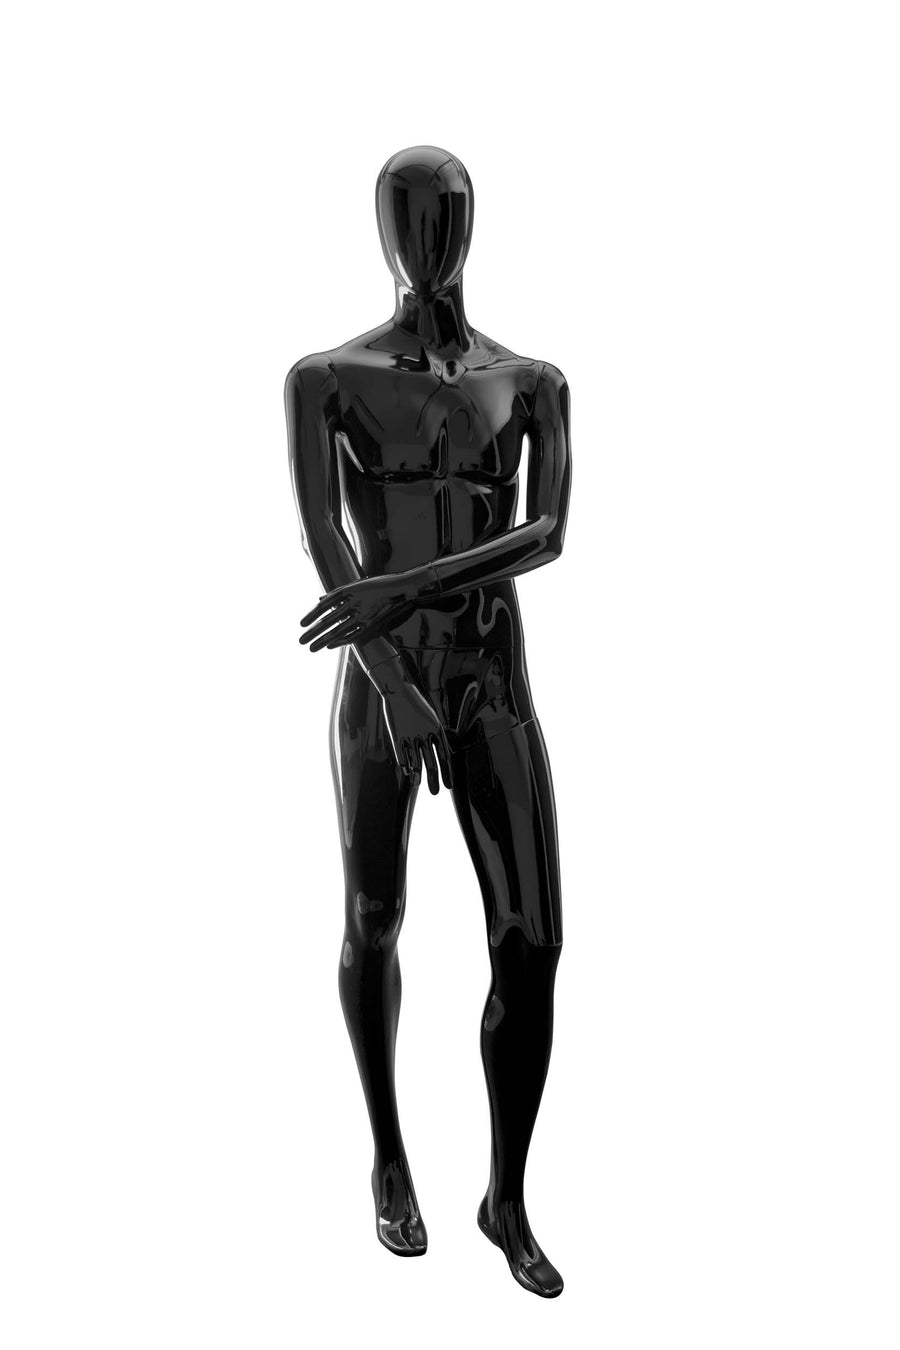 jet black male mannequin with blank face and left arm holding right arm